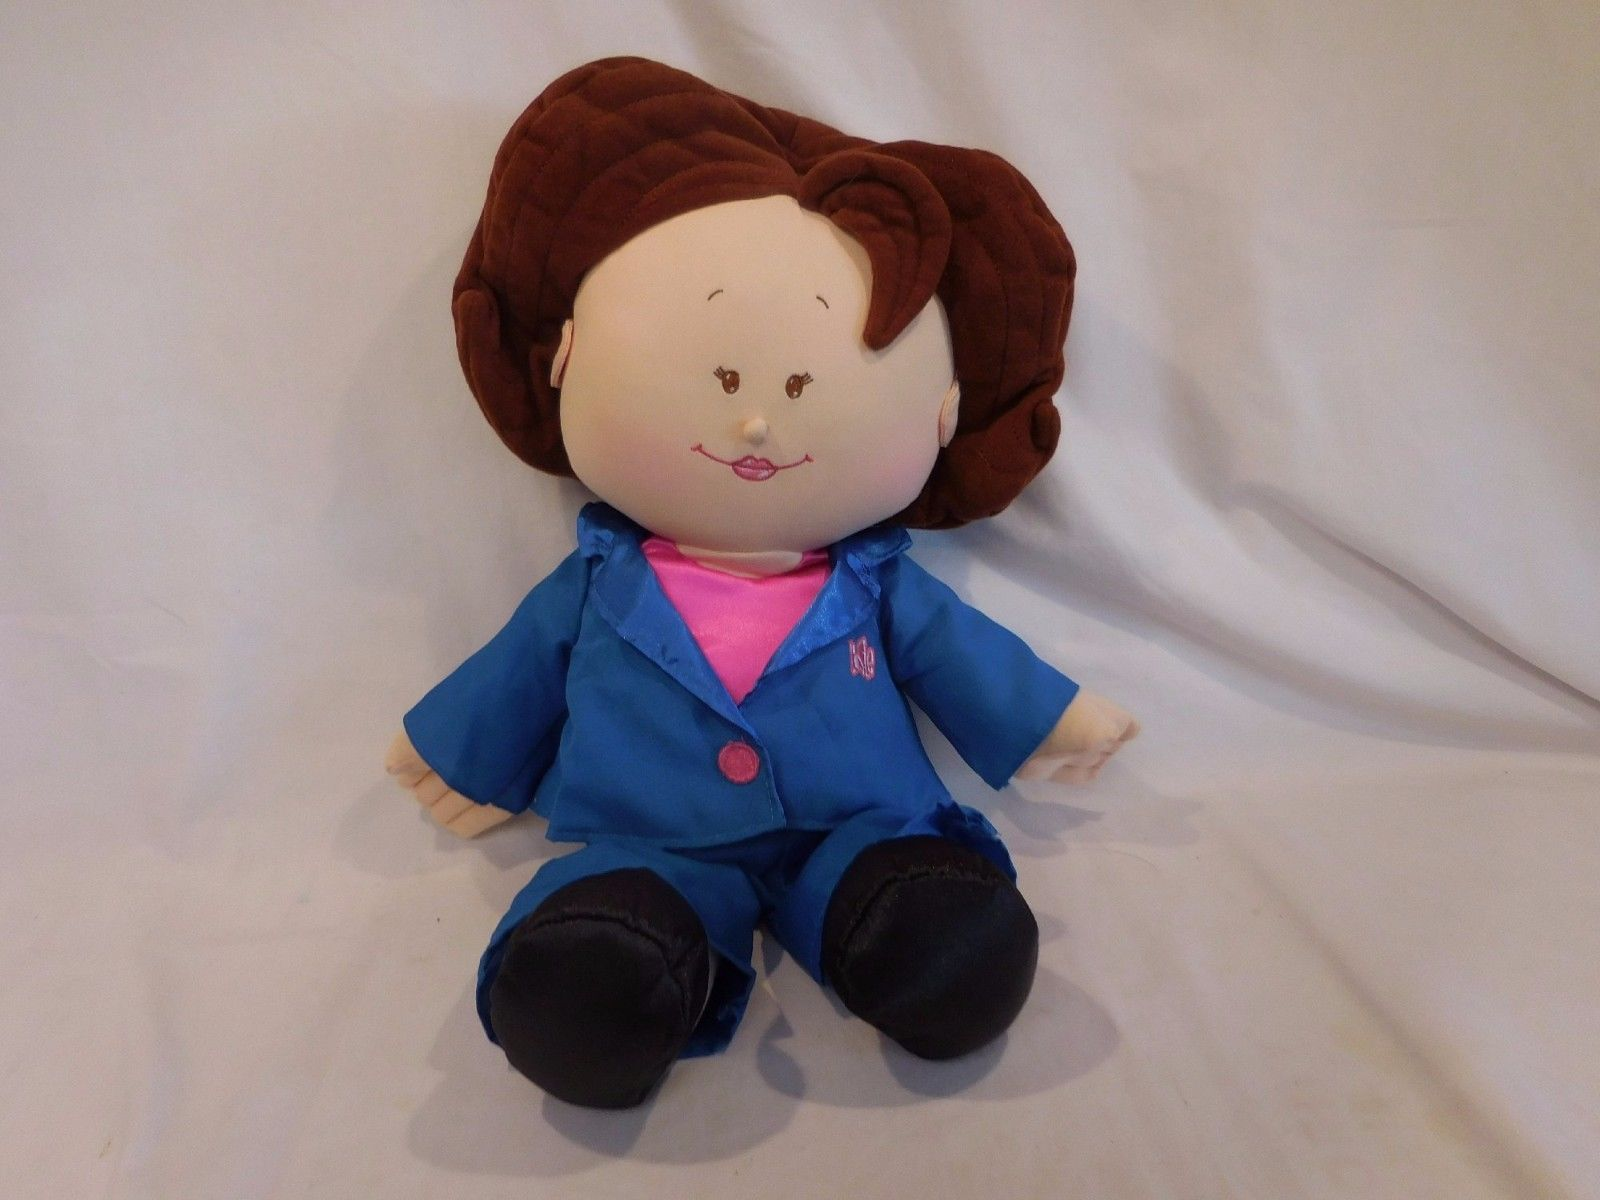 Rosie O Donnell O Doll Talking Plush Soft Toy Tyco 1997 Comedian Actress TV Show